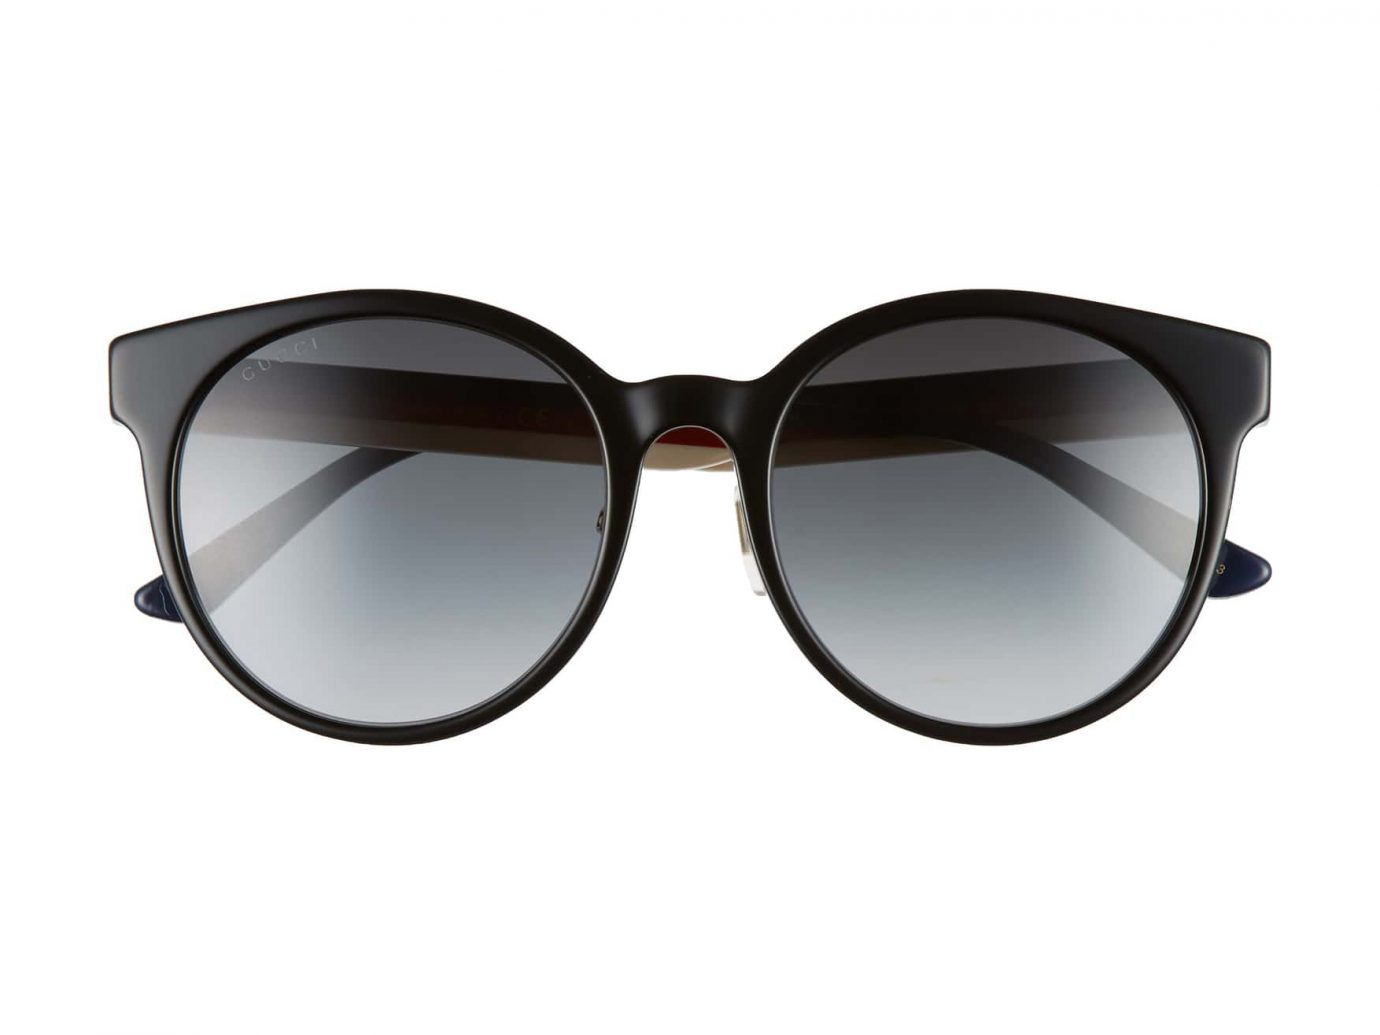 55mm Round Sunglasses GUCCI